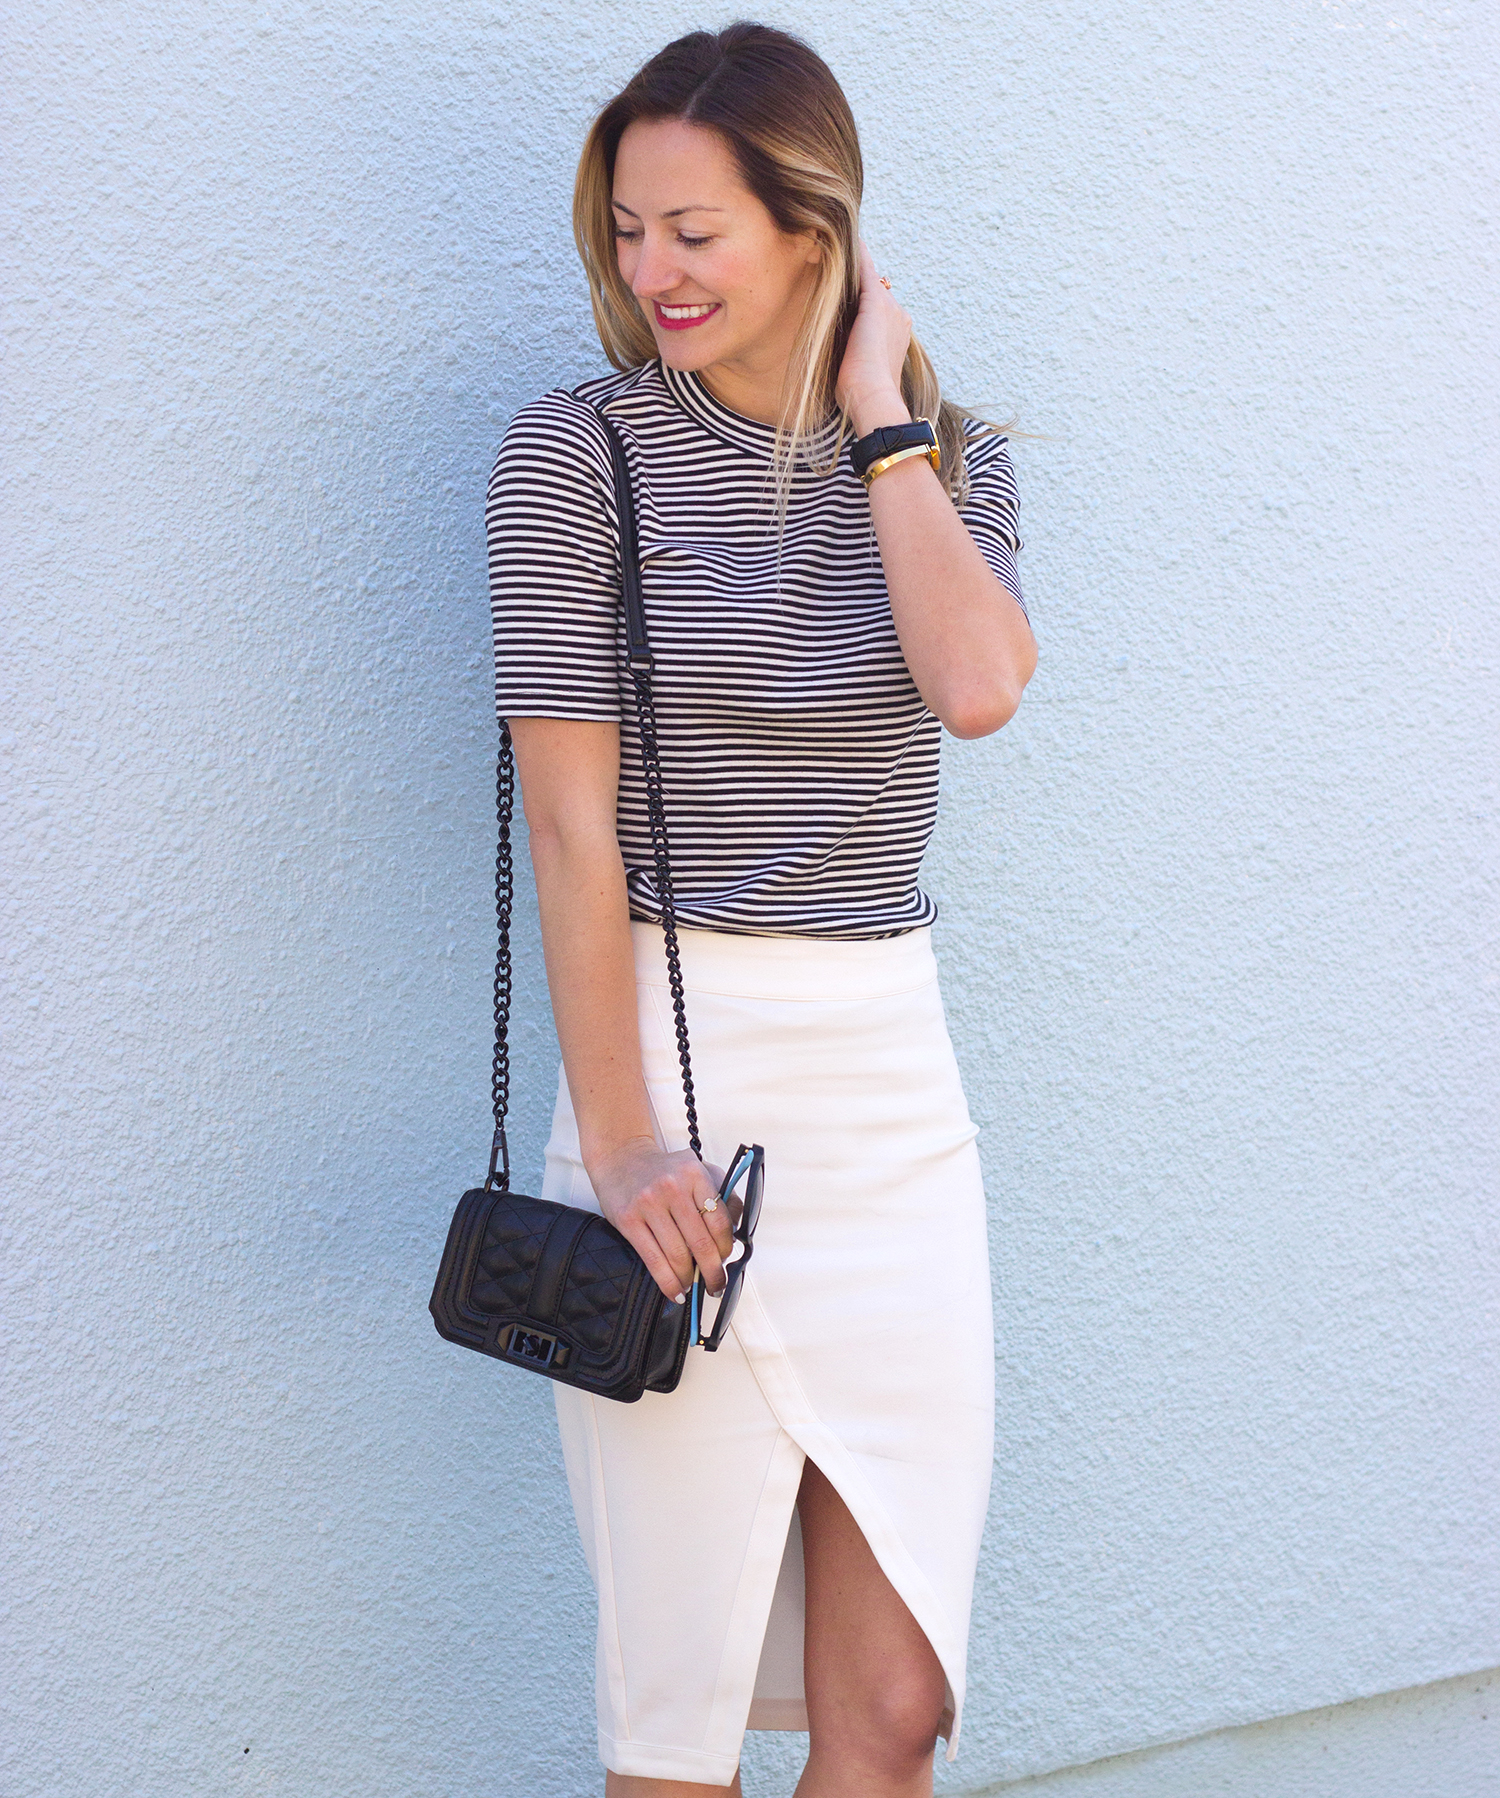 livvyland-blog-olivia-watson-austin-texas-fashion-blogger-steve-madden-stecy-nude-heels-cupcakes-and-cashmere-white-pencil-skirt-madewell-striped-tee-shirt-7